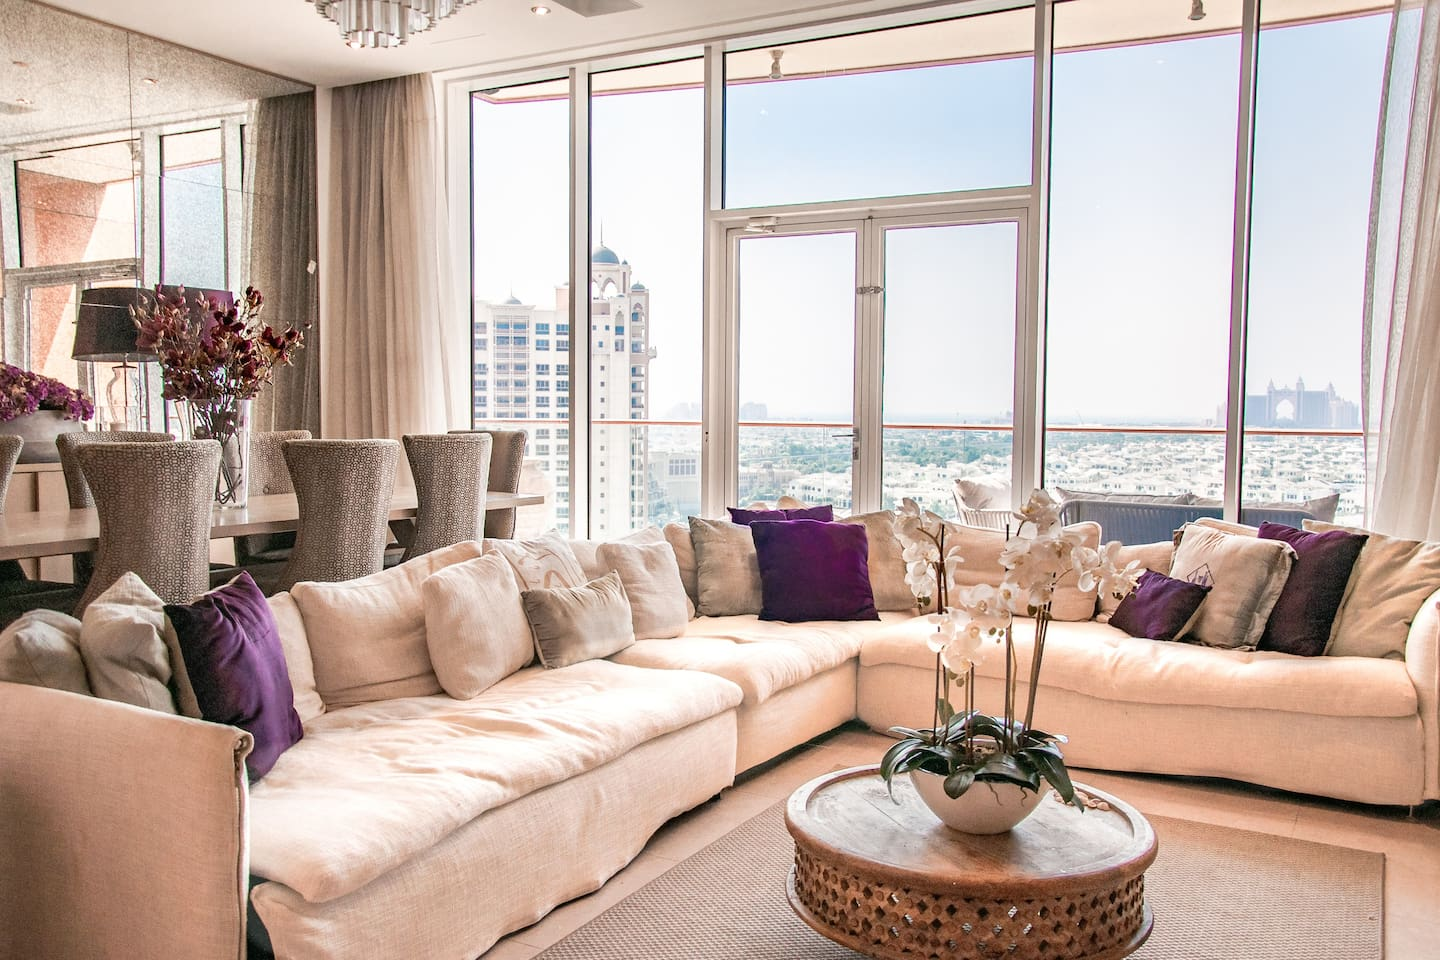 Welcome to my home! Full of luxury upgrades, and personal touches - it is the perfect slice of Dubai life. Located on the Palm Jumeirah, overlooking the sea, Palm Jumeirah Marina, Atlantis and Burj Al Arab. Great for families, or groups of friends.